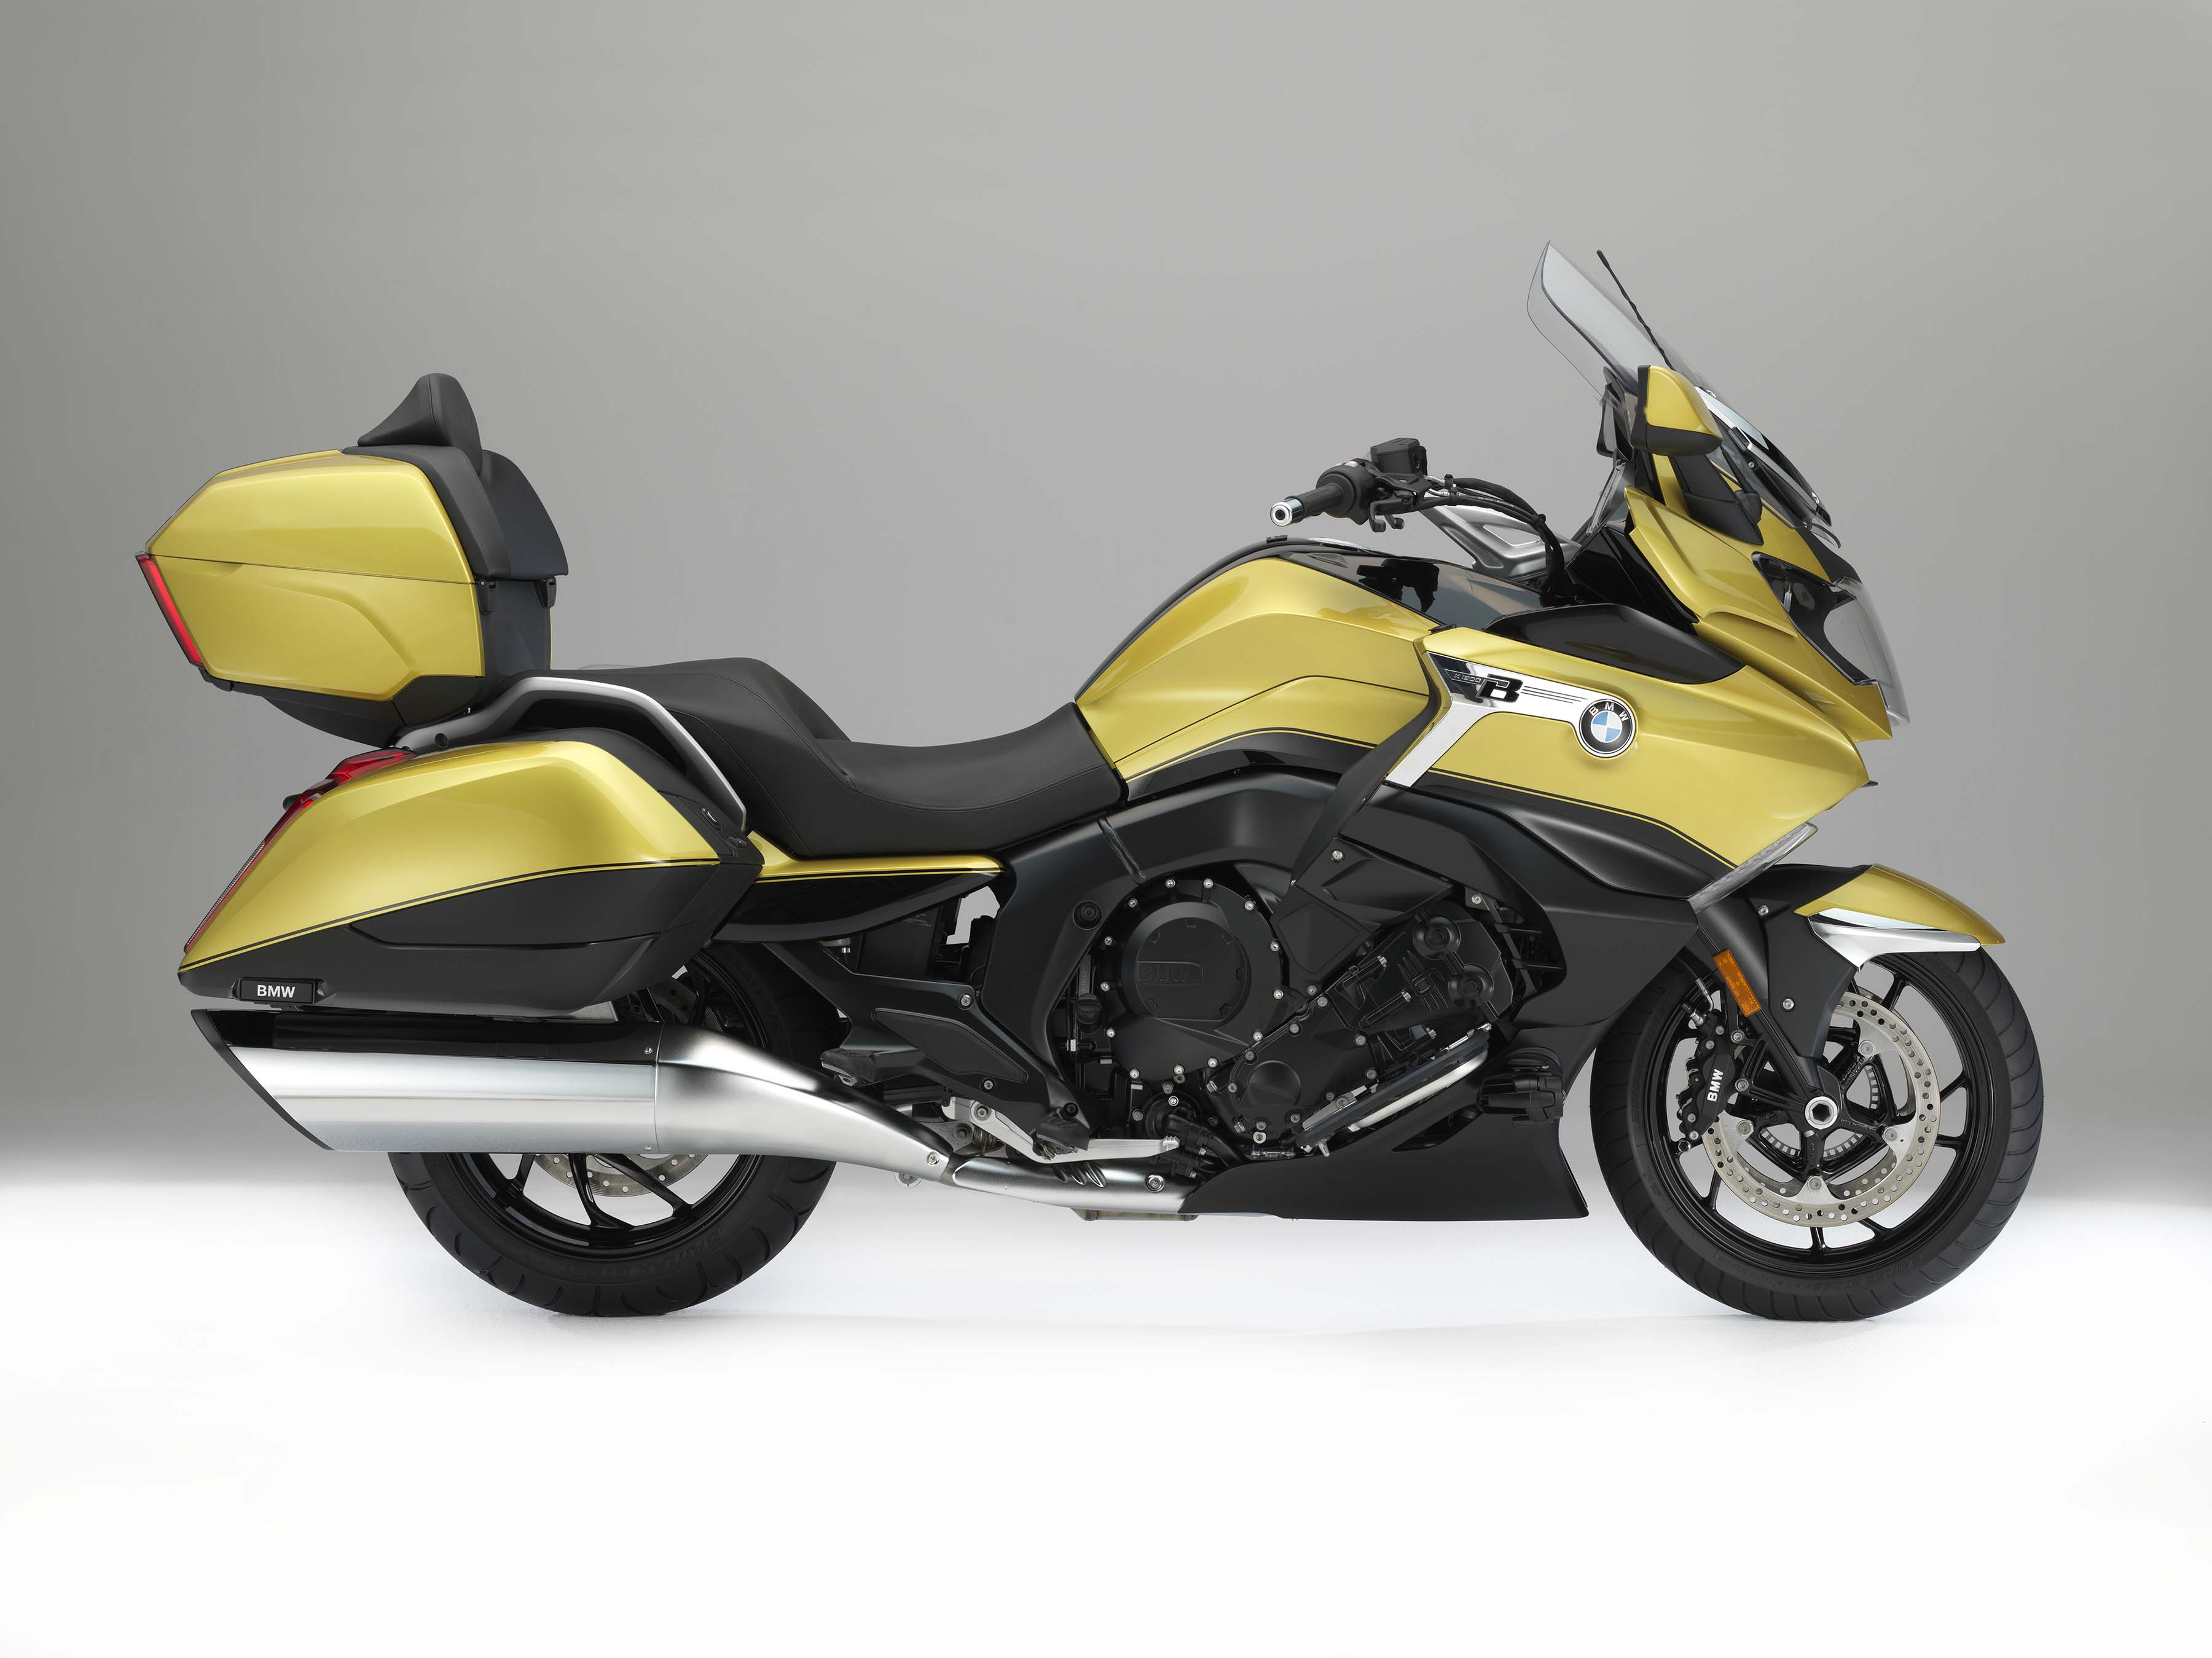 bmw k1600 grand america touring the american way asphalt rubber. Black Bedroom Furniture Sets. Home Design Ideas